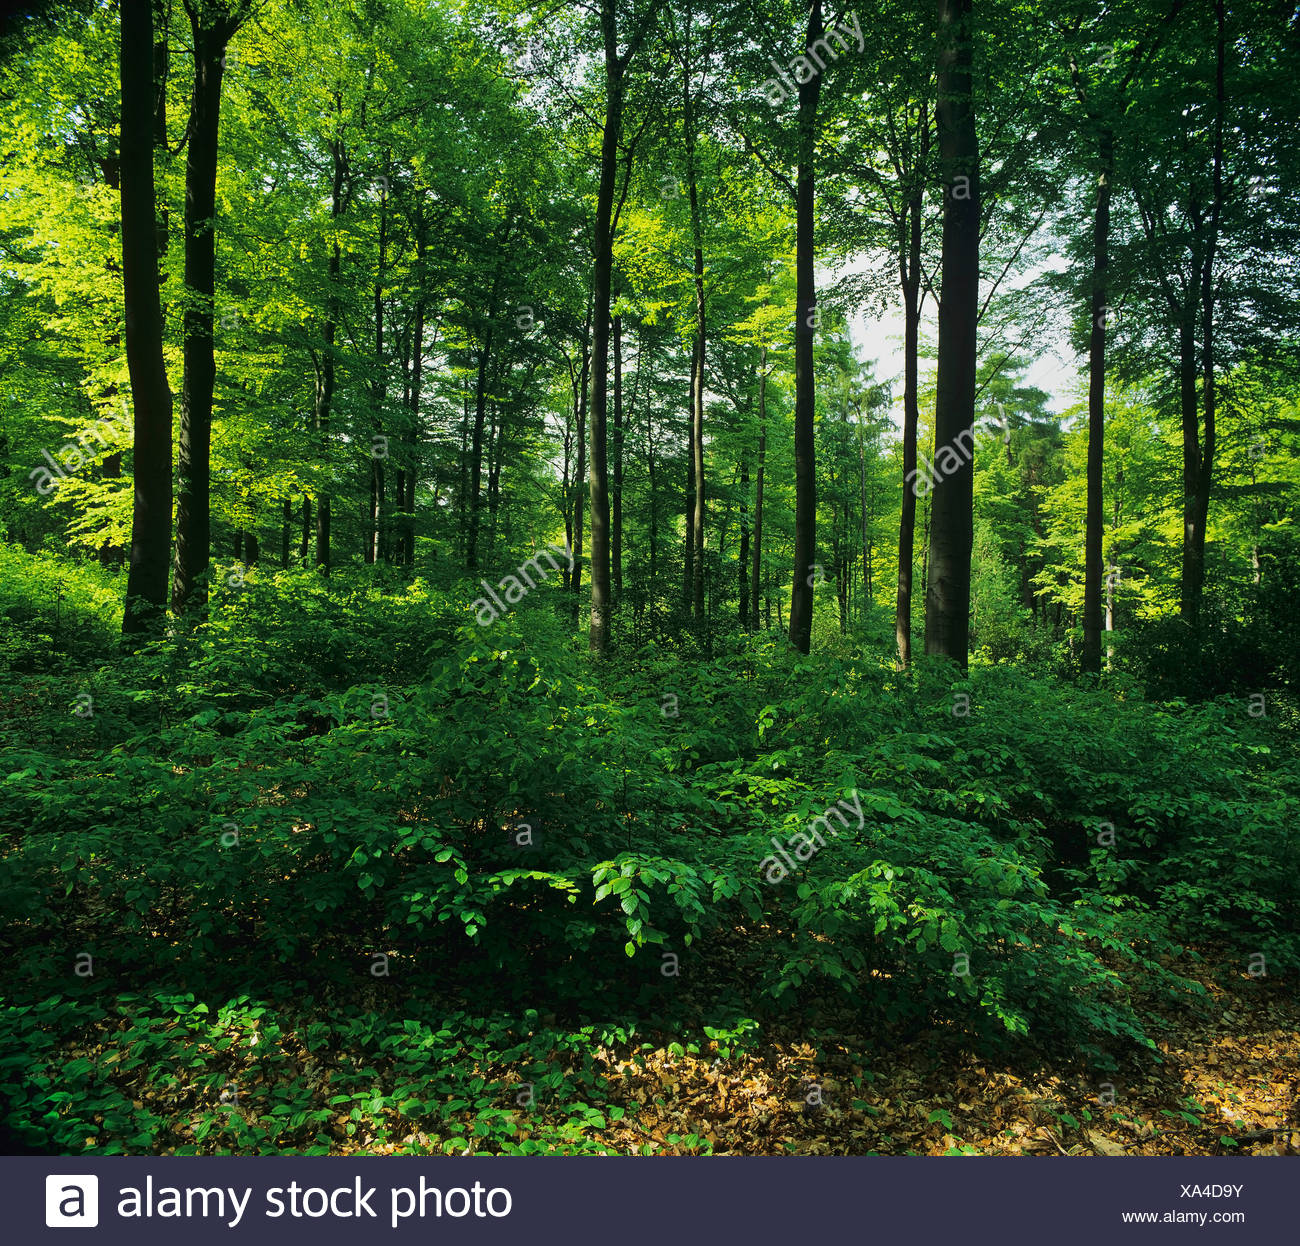 Beech forest with undergrowth, North Rhine-Westphalia, Germany, Europe Stock Photo